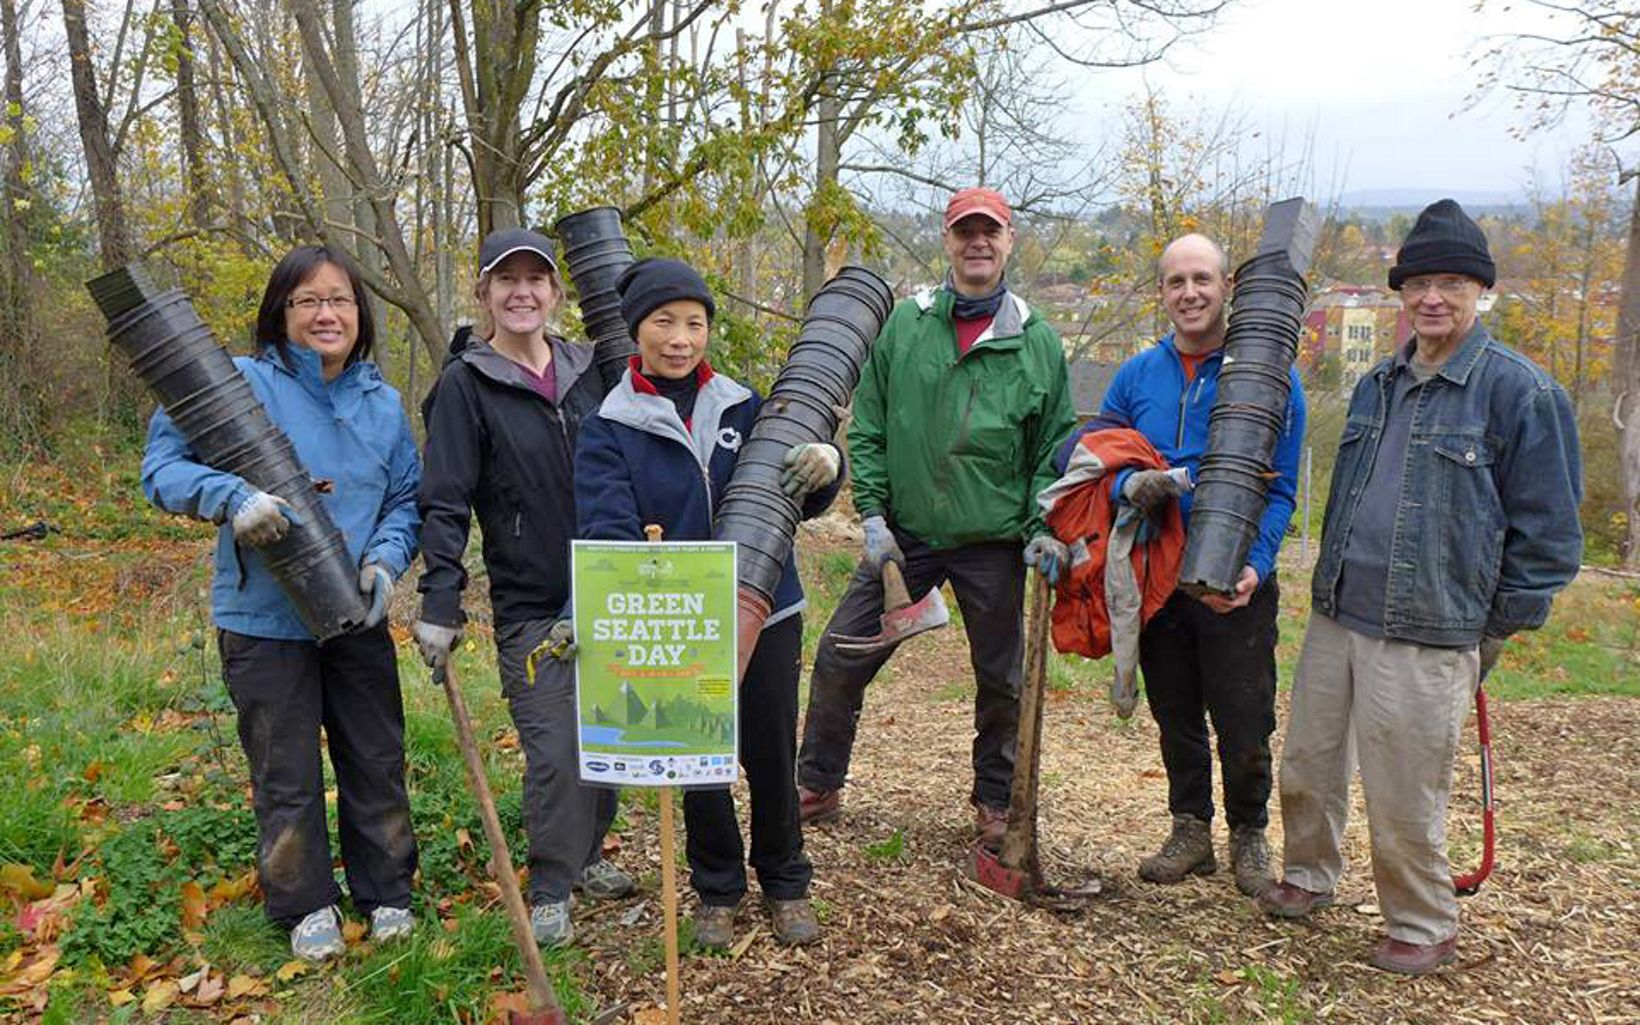 Volunteers in Seattle, WA plant trees as part of Green Seattle Day, 2013.